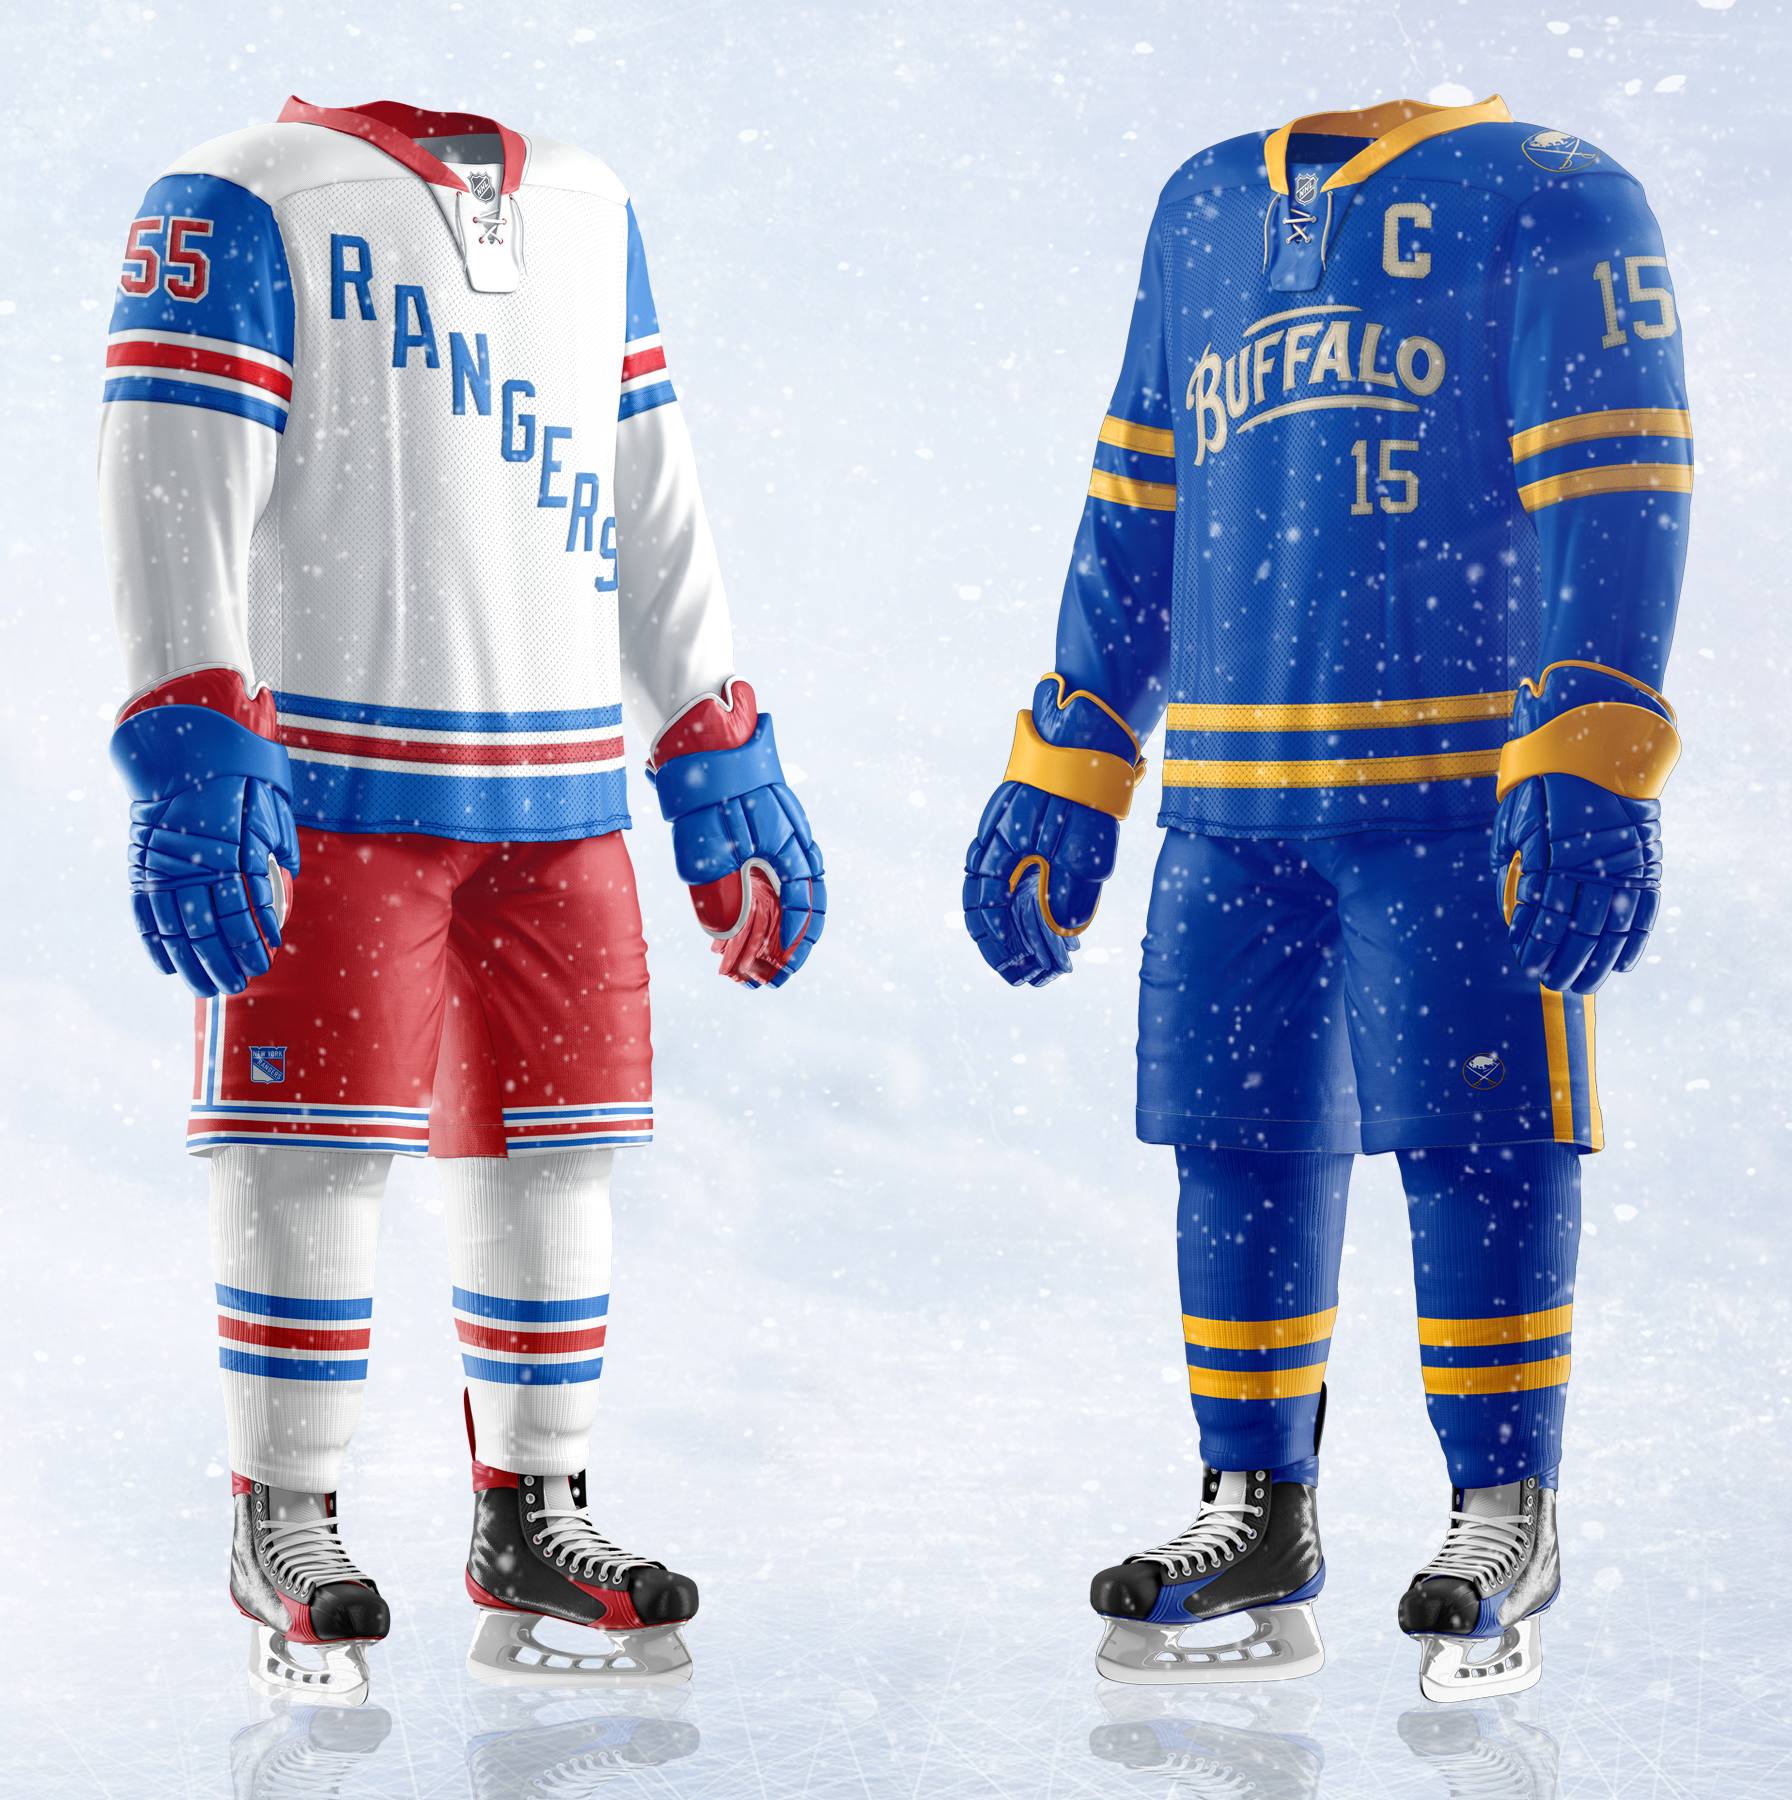 low priced a6991 3a666 2018 Winter Classic Jersey Concepts - Concepts - Chris ...